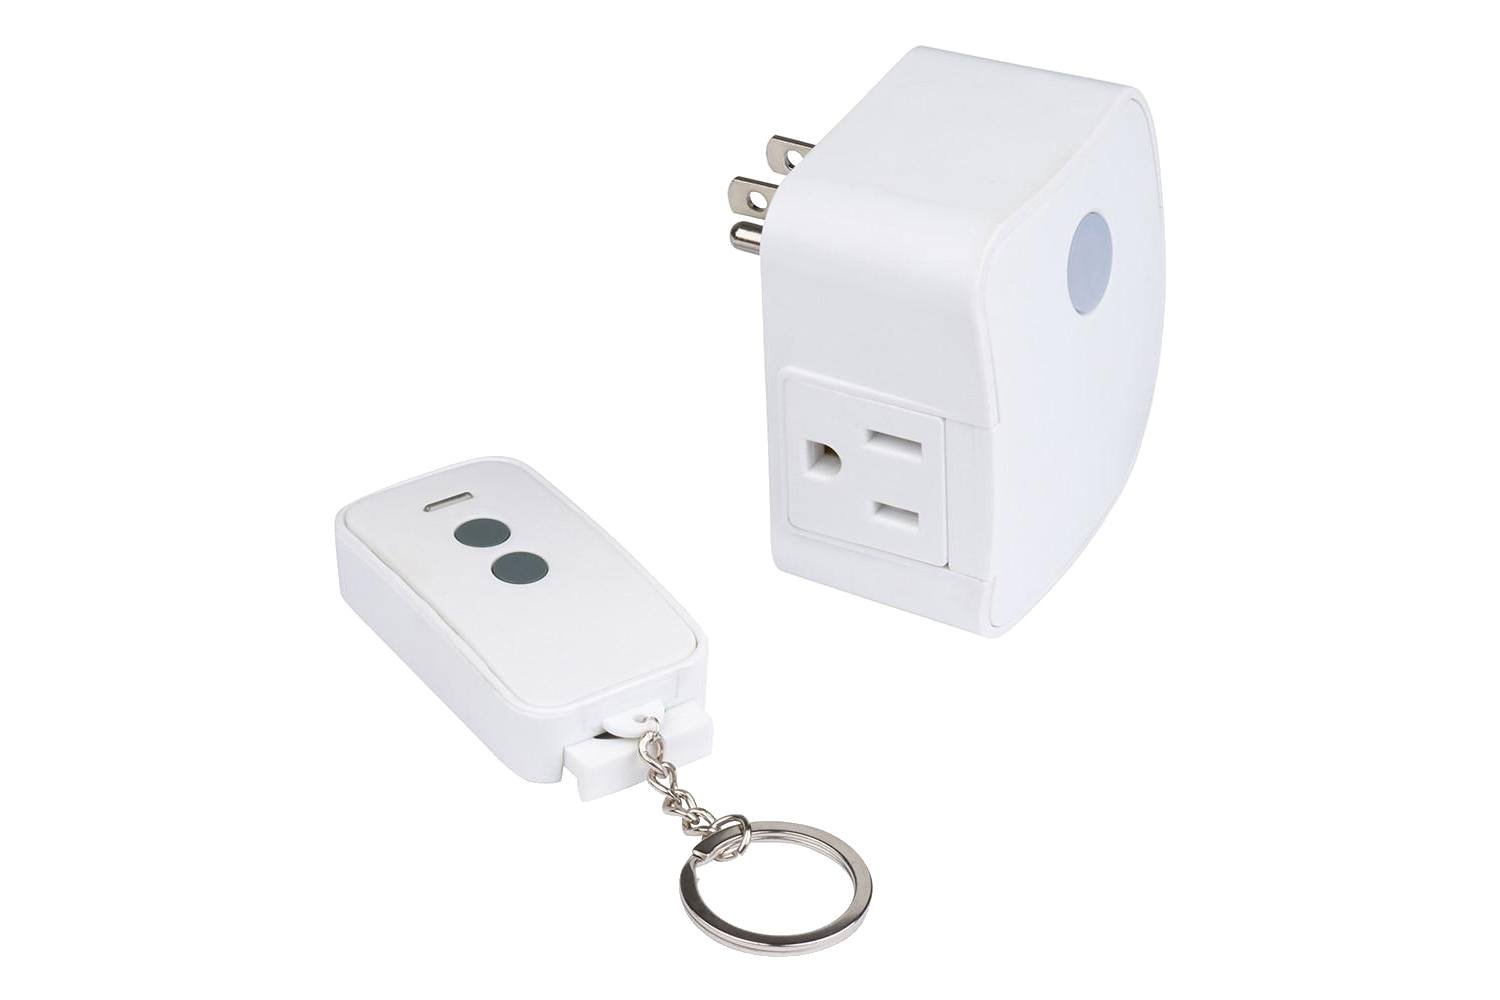 WESTEK Wireless Remote-Control Receiver Fob with Plug-In Receiver - Control Indoor Devices Wirelessly - Ideal For Lamps, Stereos and Household Appliances - Signal Works Up To 100 Feet Away